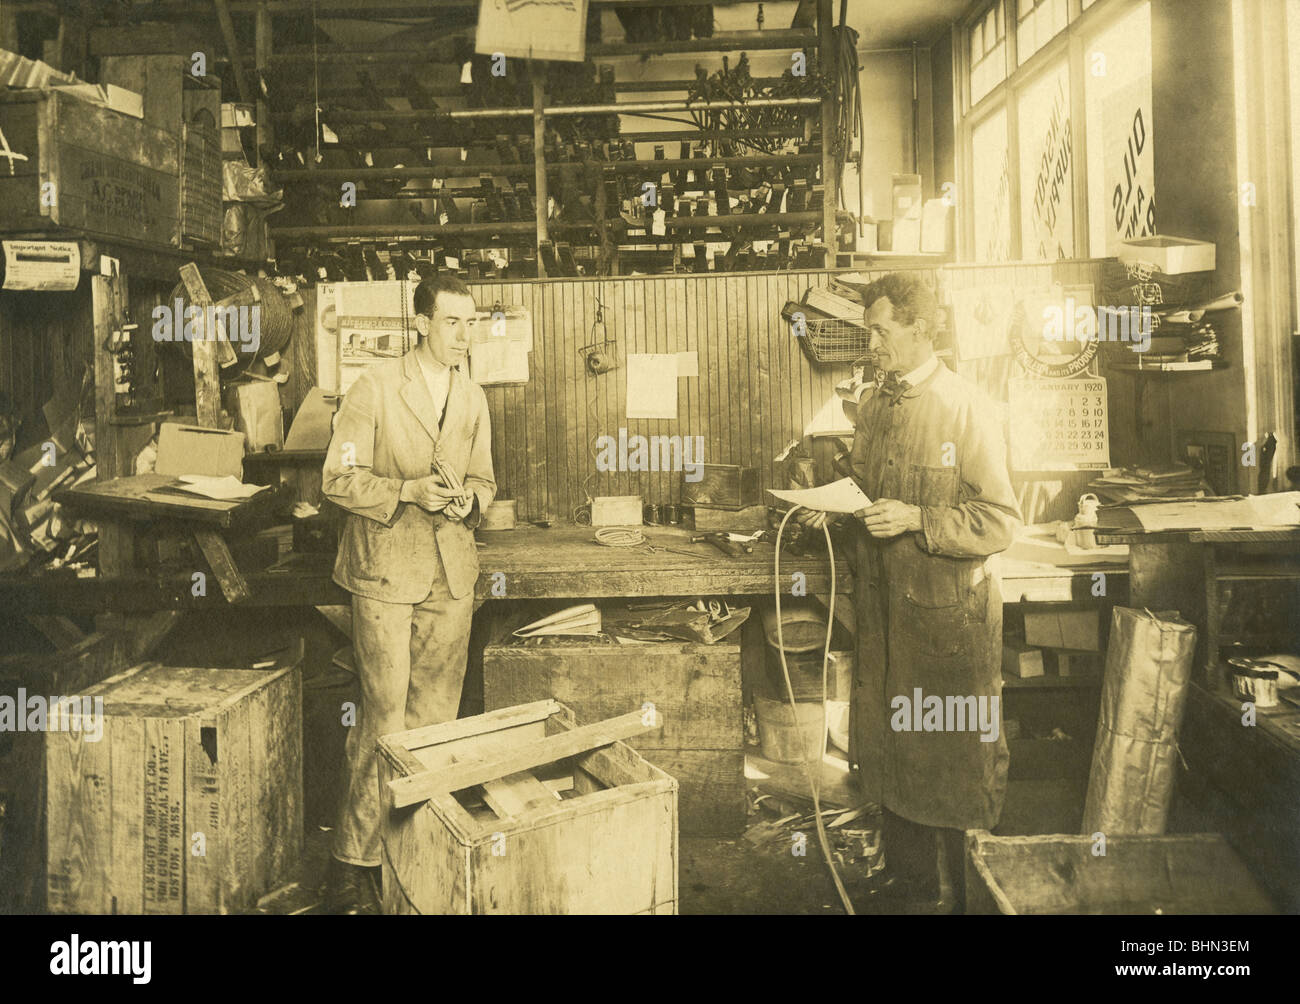 1920 photo of the mechanic's garage in the Linscott Motor Company, 690 Commonwealth Avenue, Boston, Massachusetts. Stock Photo